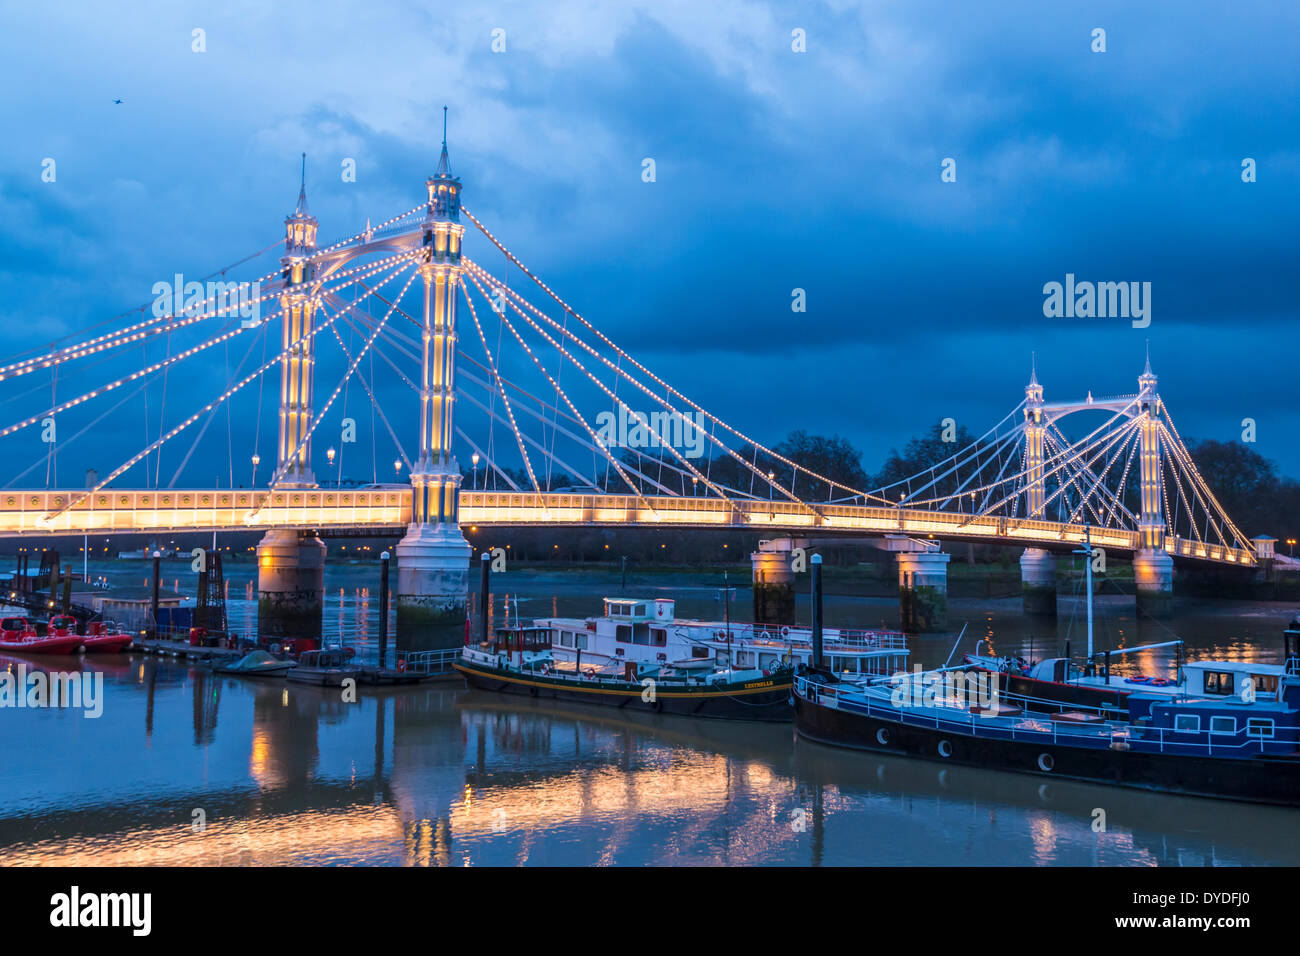 A view of Albert Bridge from Chelsea Embankment. - Stock Image